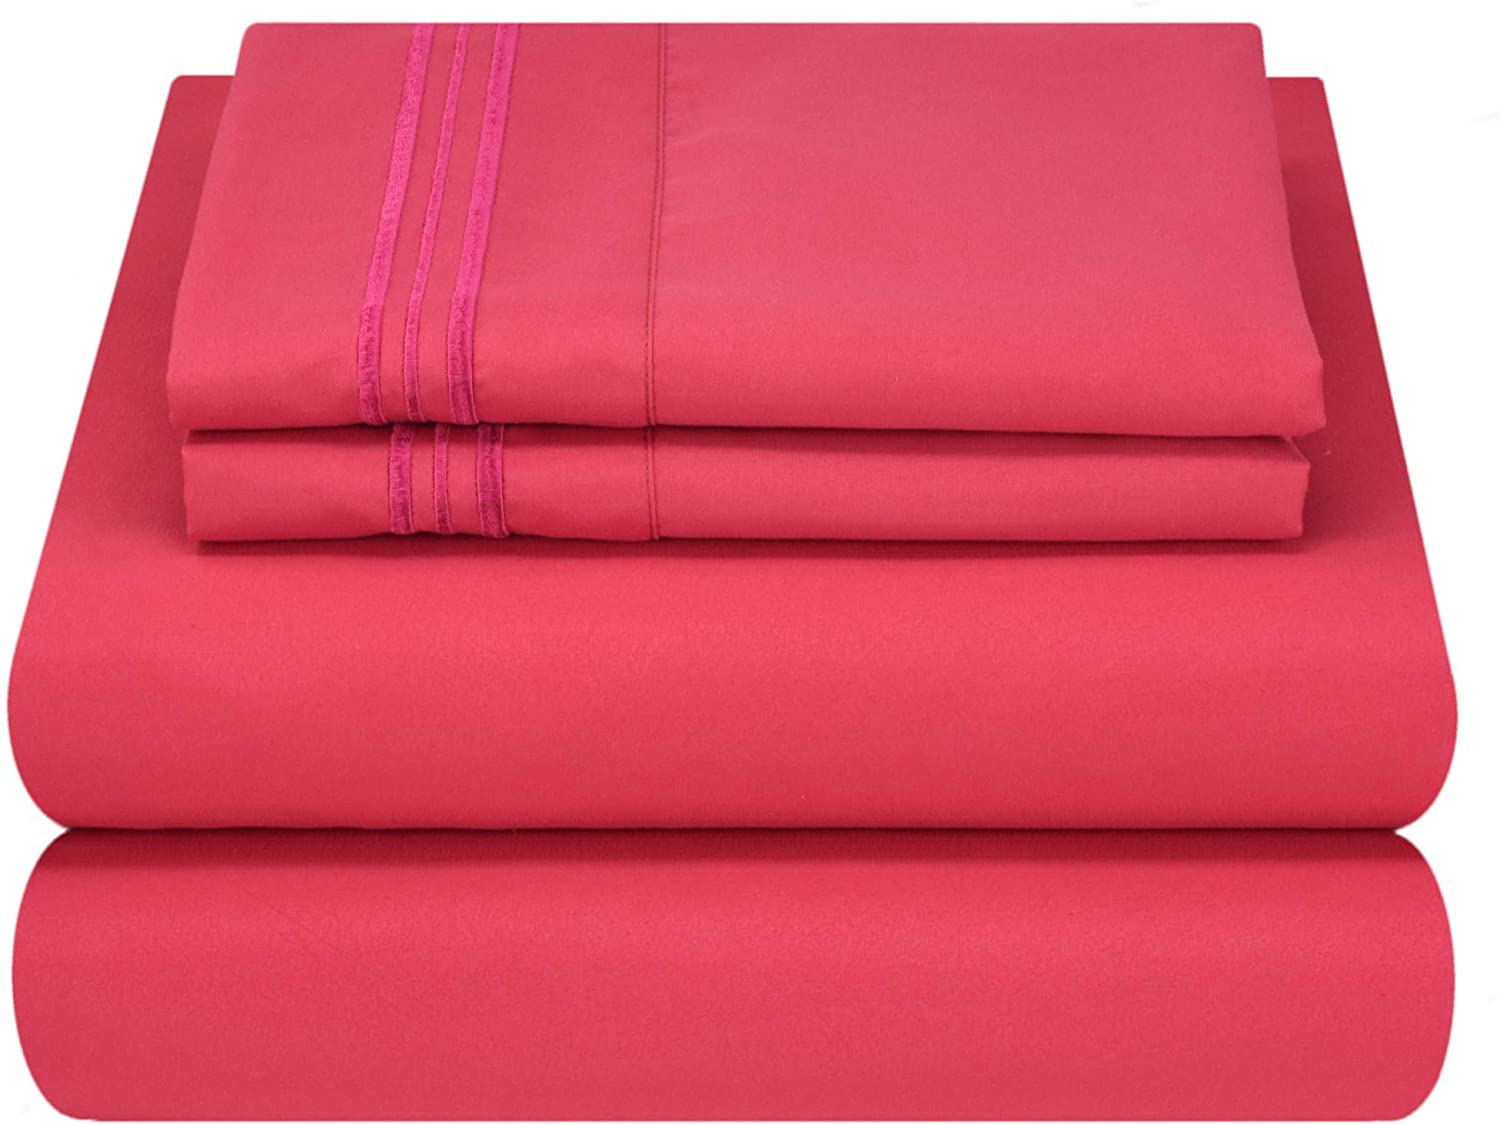 Mezzati Luxury Bed Sheet Set - Soft and Comfortable 1800 Prestige Collection - Brushed Microfiber Bedding (Hot Pink, Full Size)